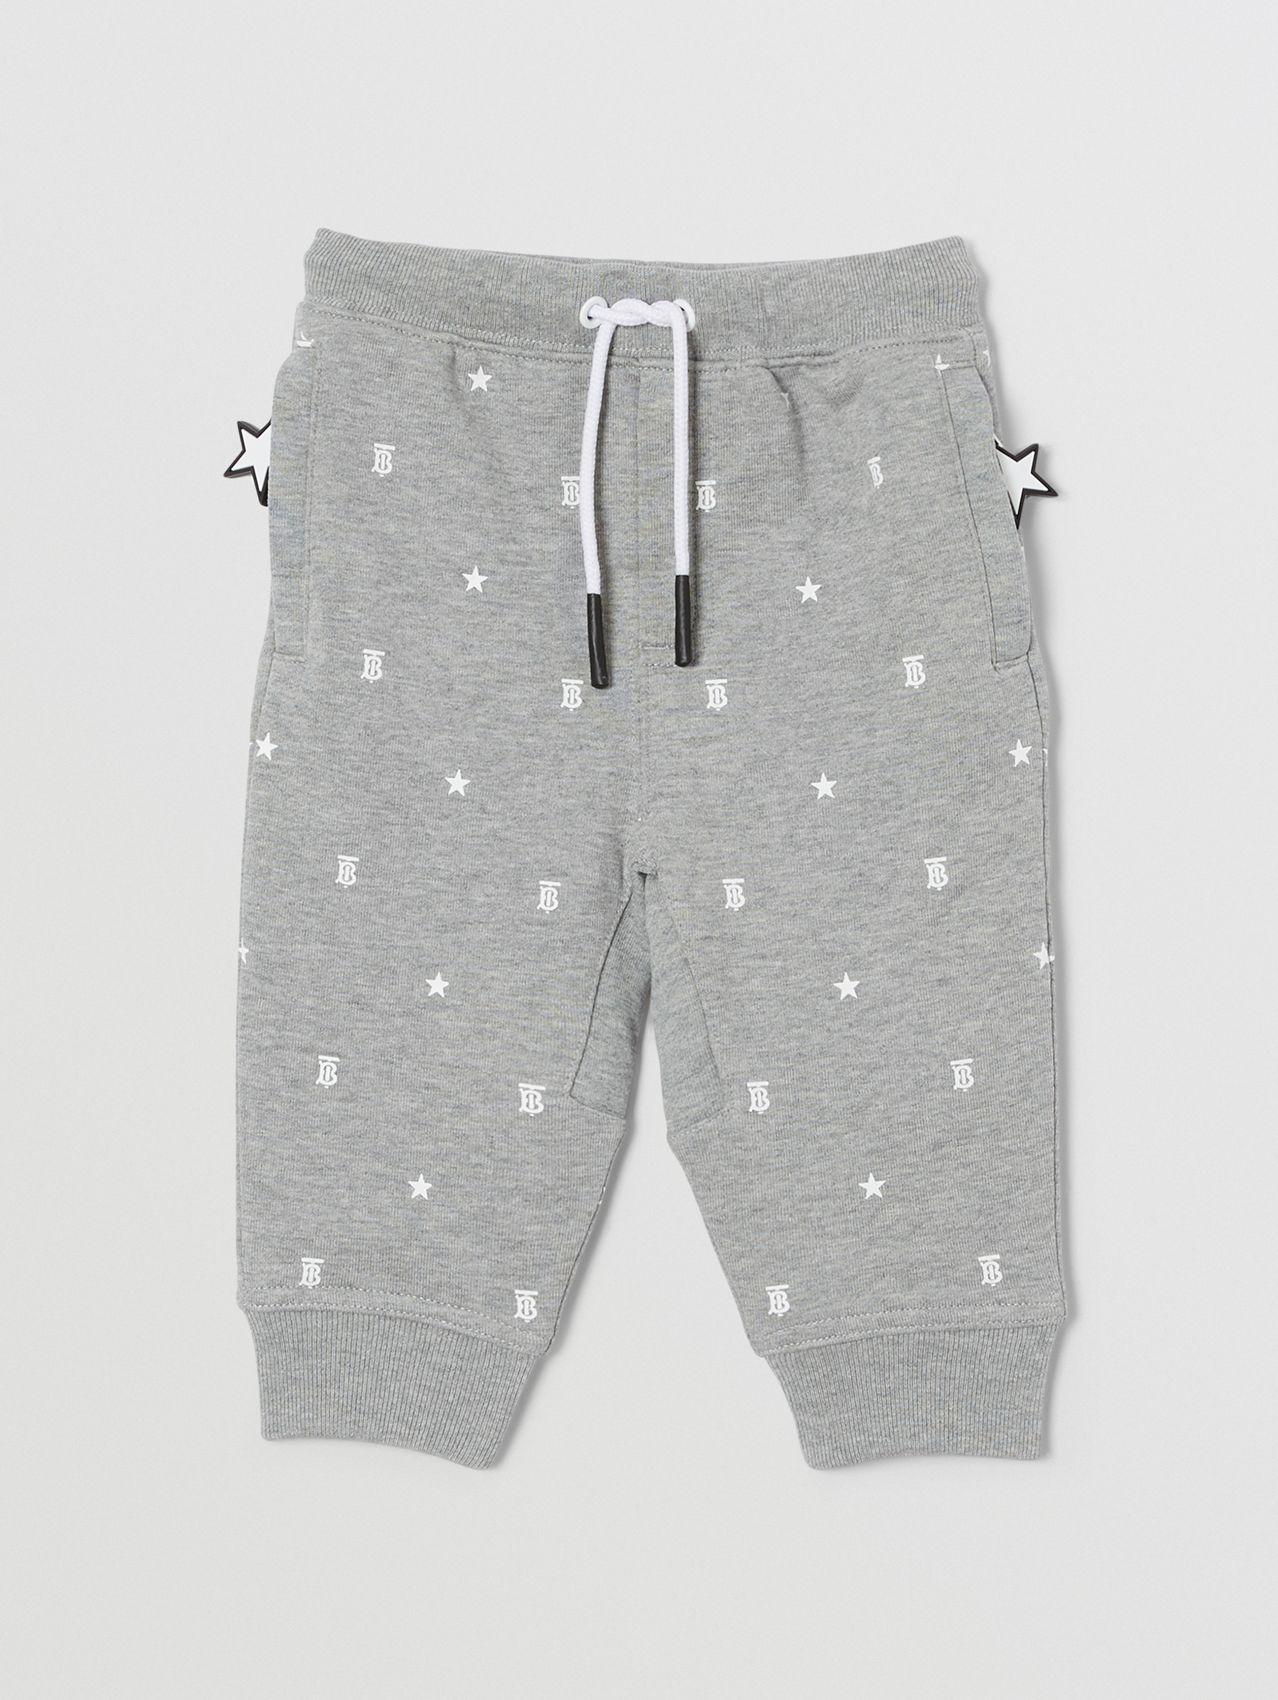 Star and Monogram Motif Cotton Jogging Pants in Grey